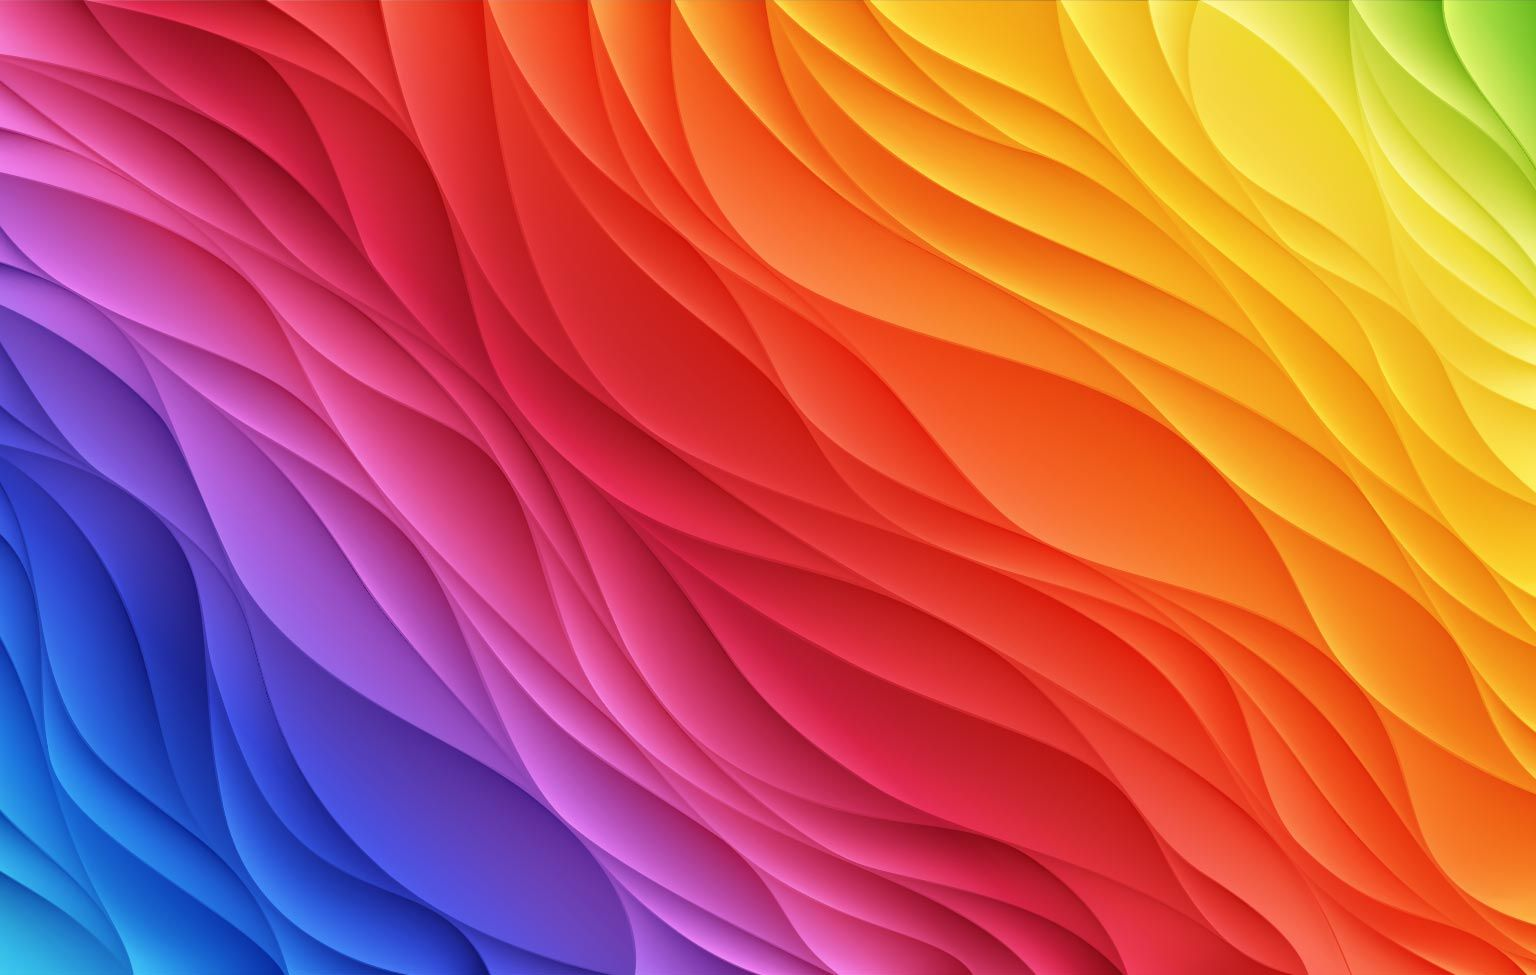 Let Us Help You Find The Perfect Paint Color Colorful Backgrounds Vivid Colors Abstract Waves